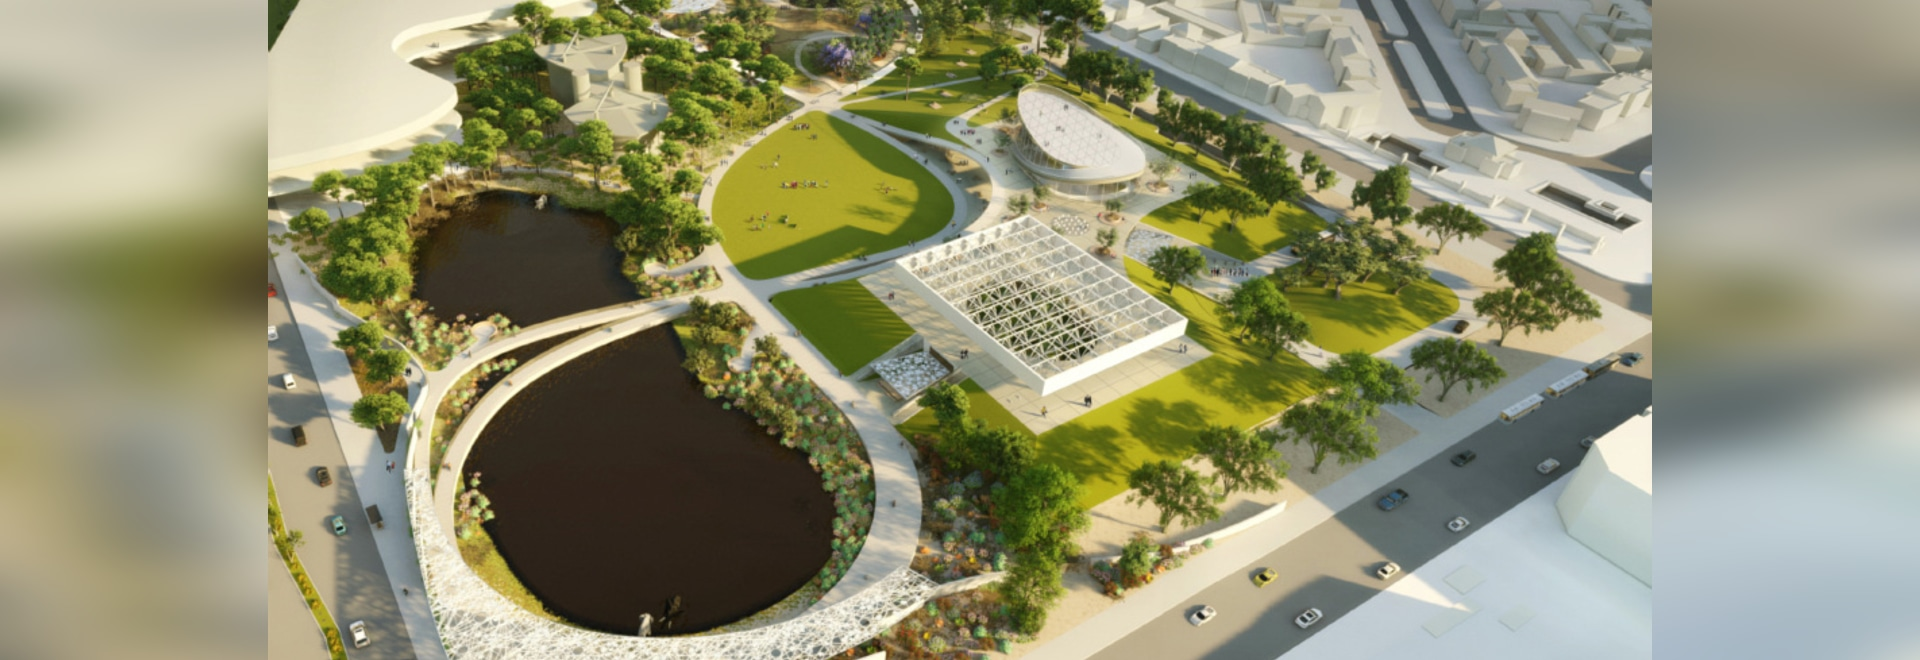 """WEISS/MANFREDI's master plan design, titled """"La Brea Loops and Lenses,"""" features a 3,281-foot-long pedestrian walkway framing natural elements across the 13-acre site"""